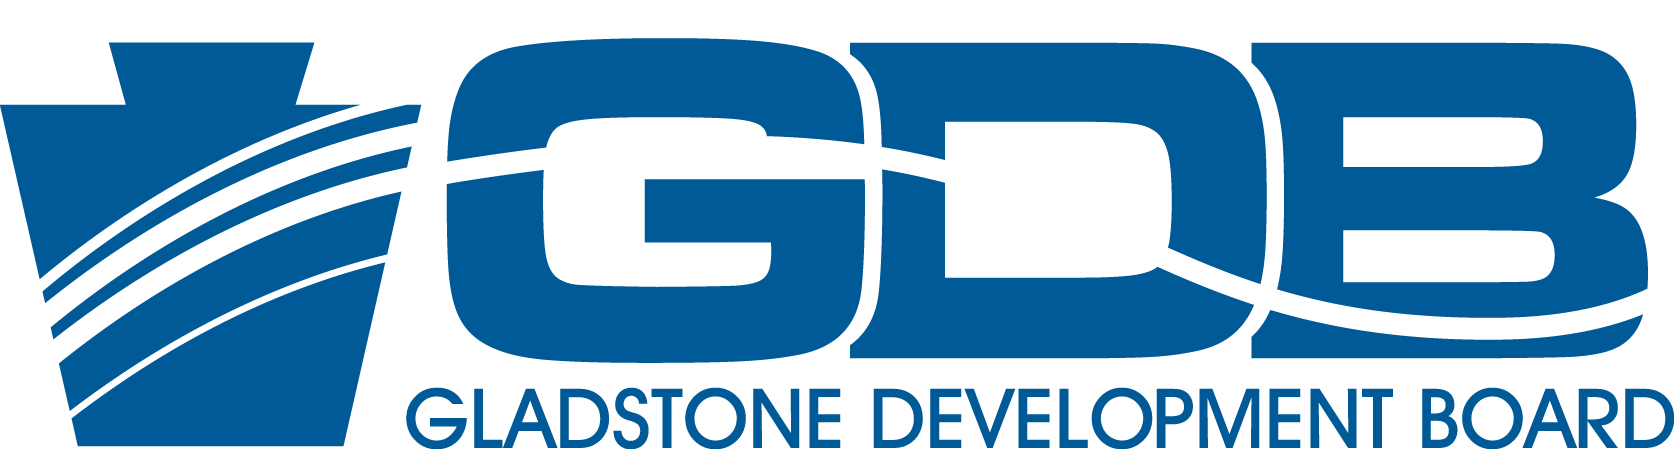 Gladstone Development Board